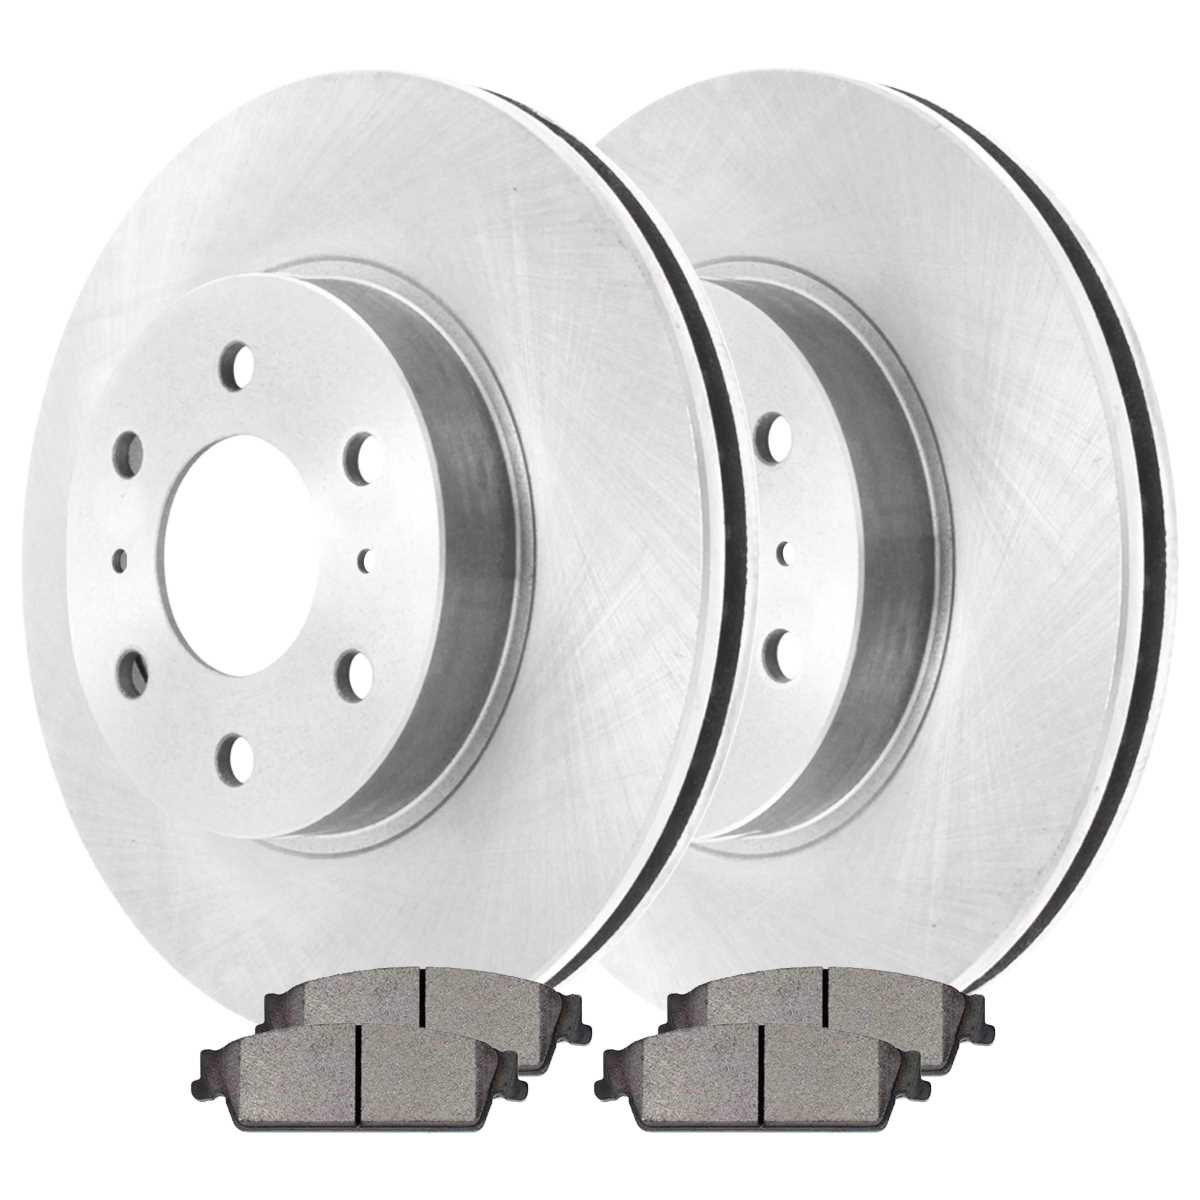 PROFORCE 35117 Premium Brake Drum Rear